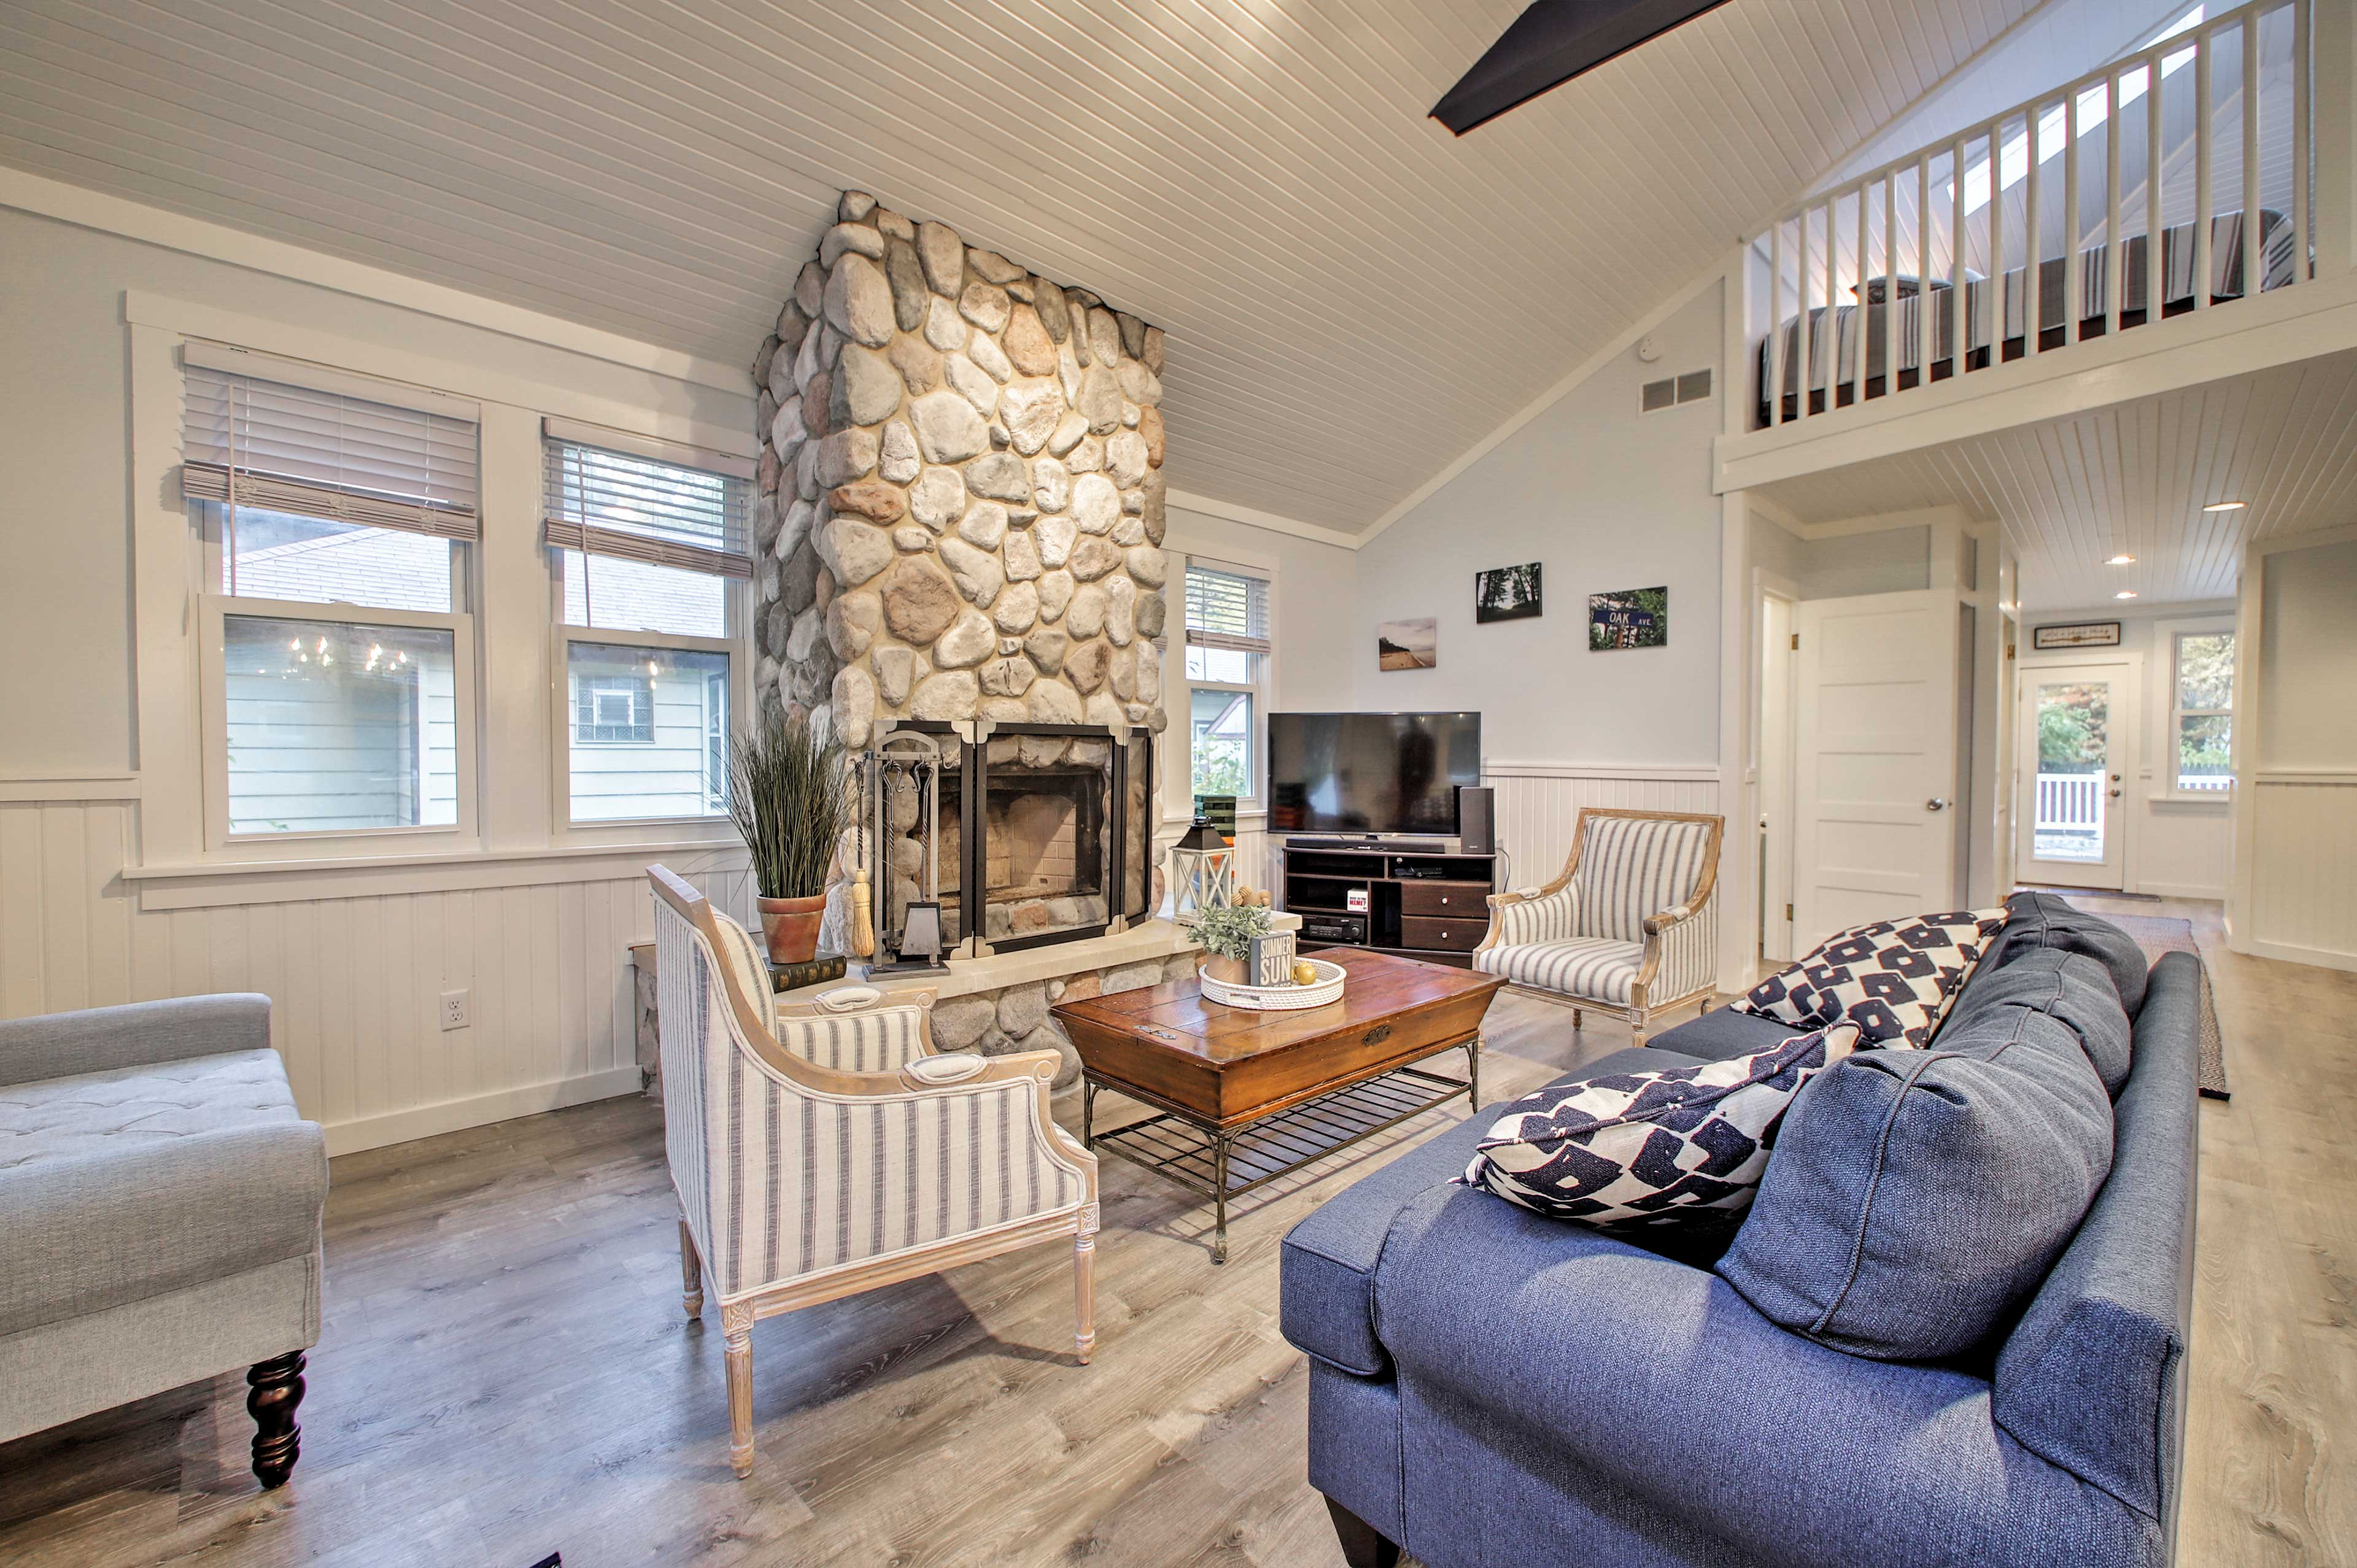 Enjoy a relaxing family vacation to this Lake Michigan abode!